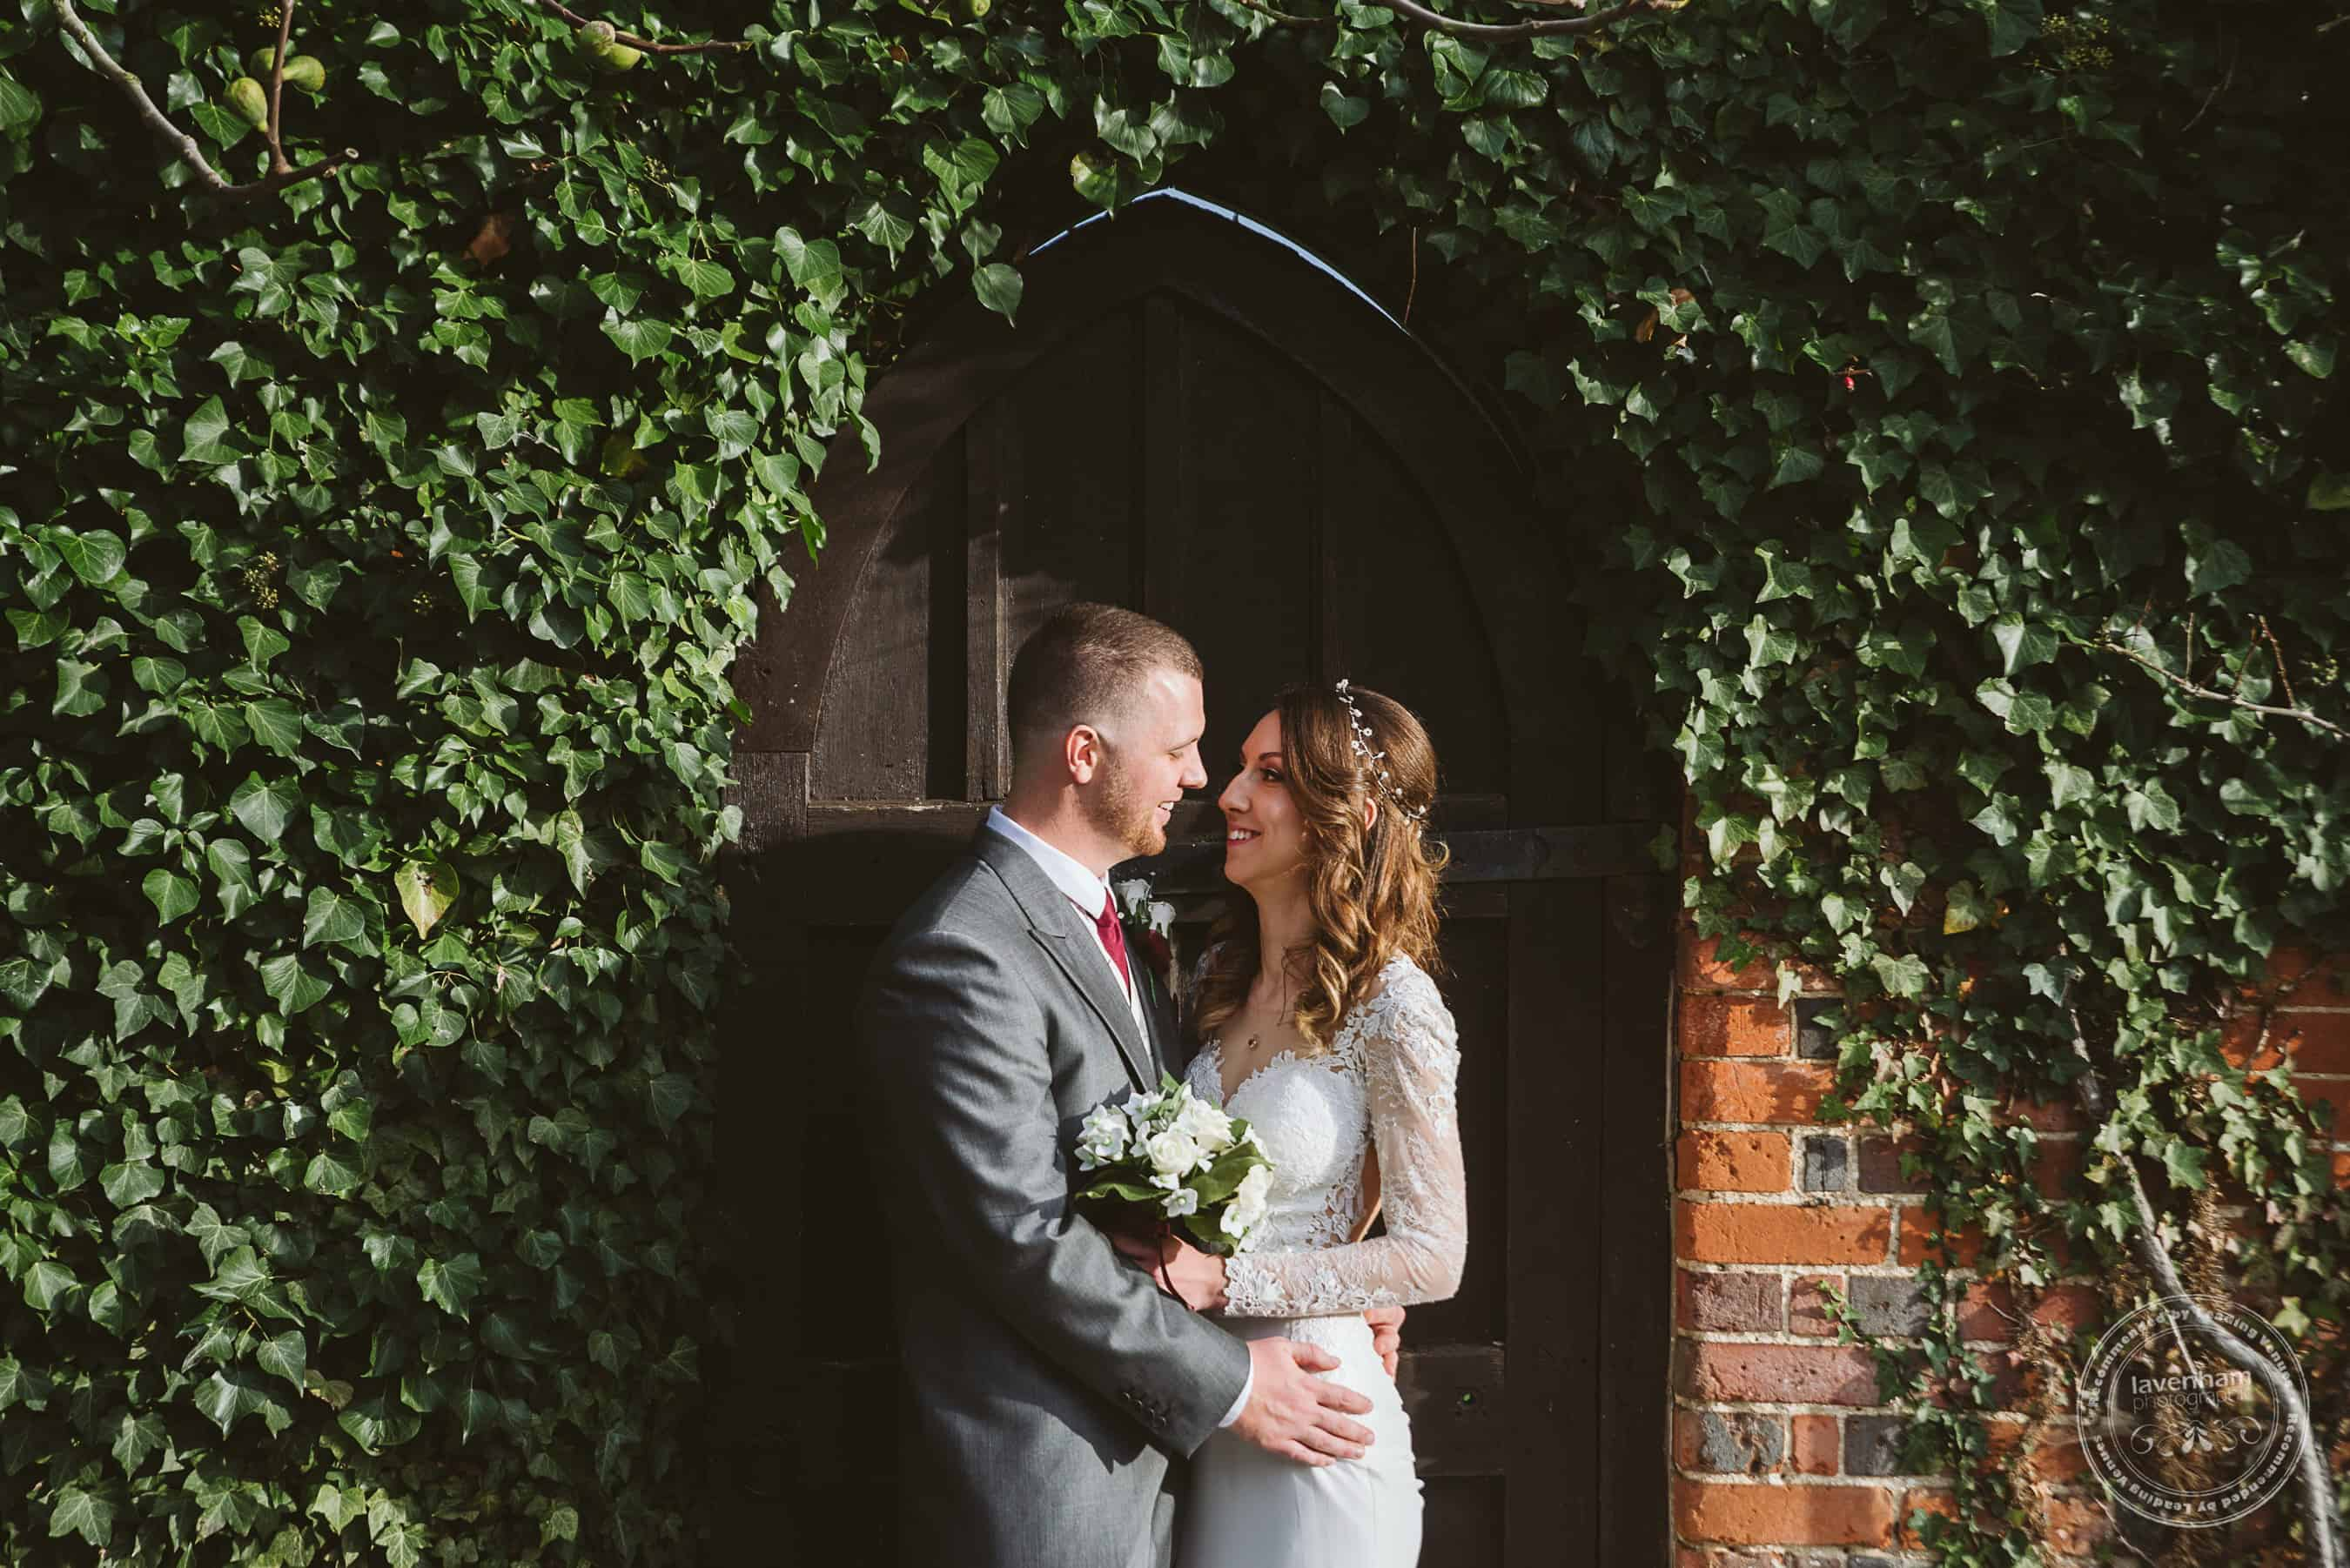 041118 Woodhall Manor Wedding Photography by Lavenham Photographic 061